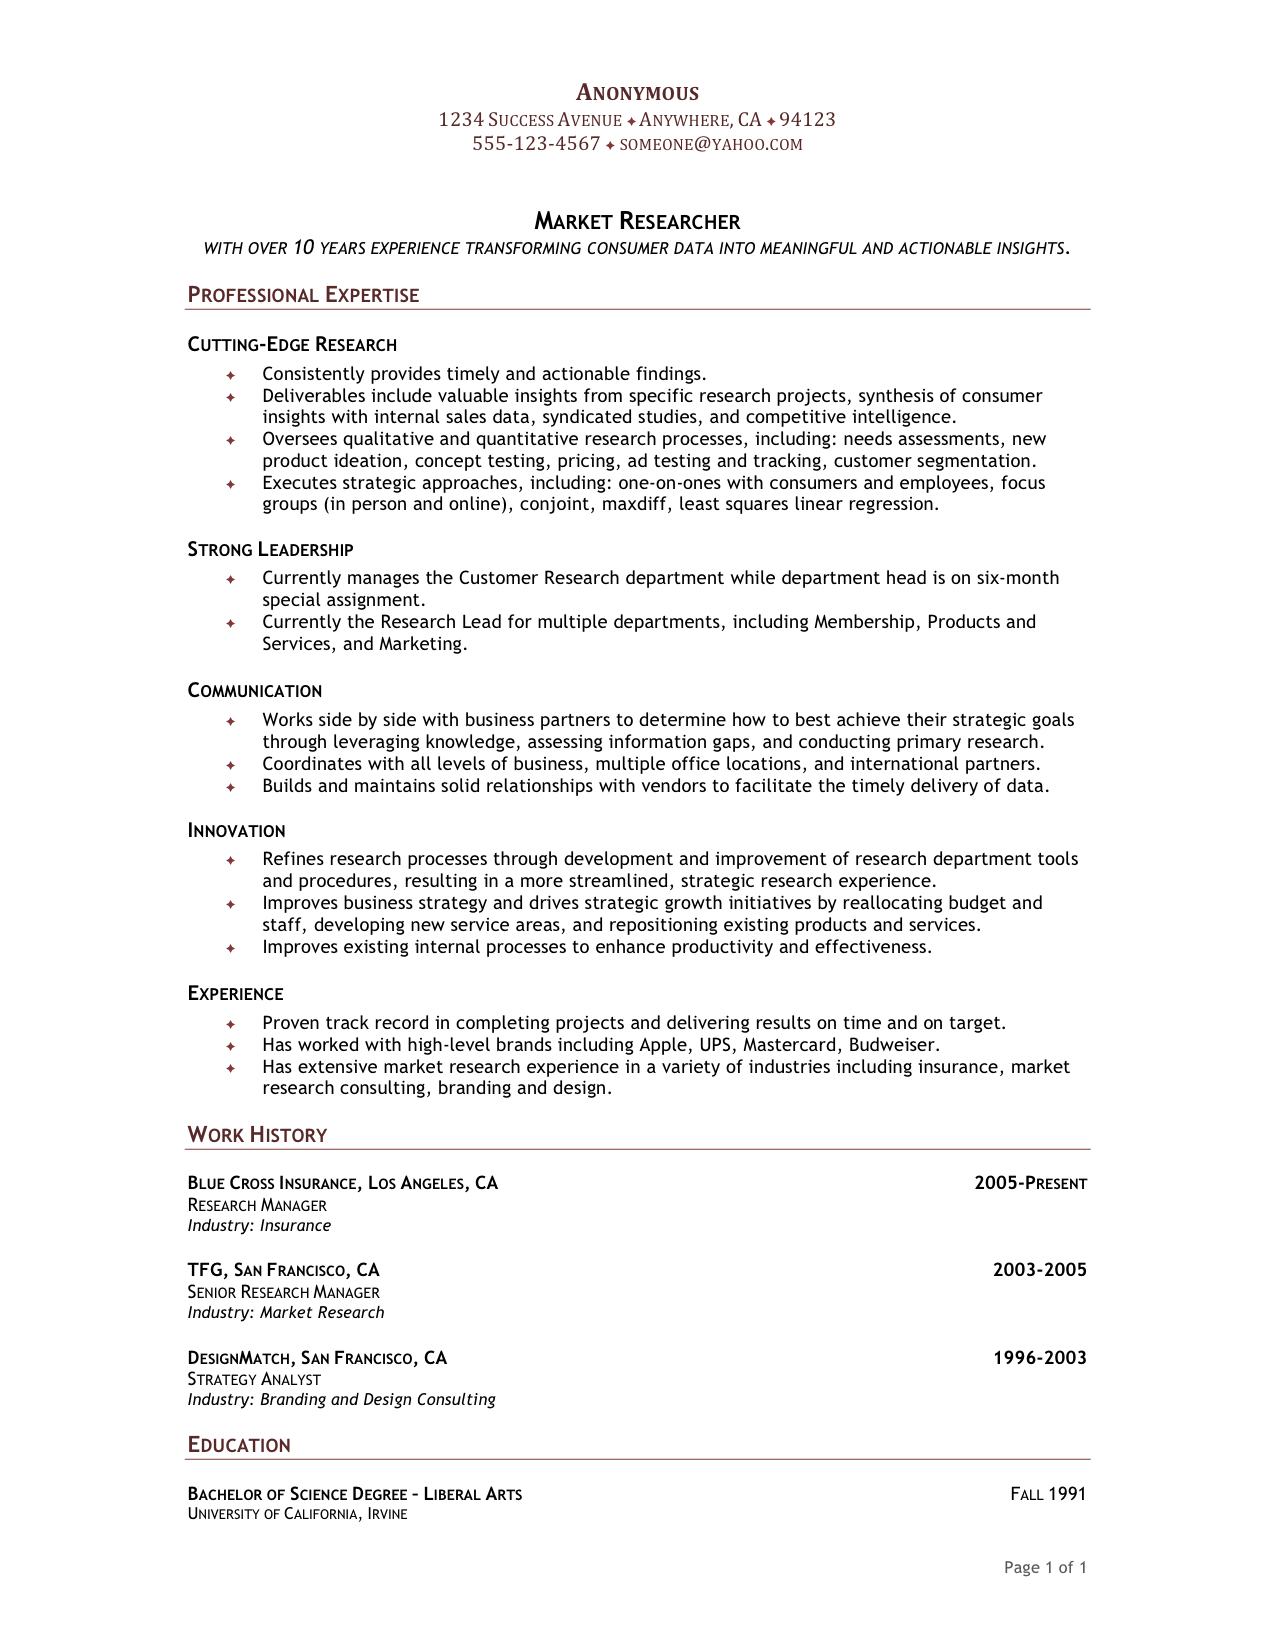 resume samples chronological vs function resume formats robin functional resume format functional resume format